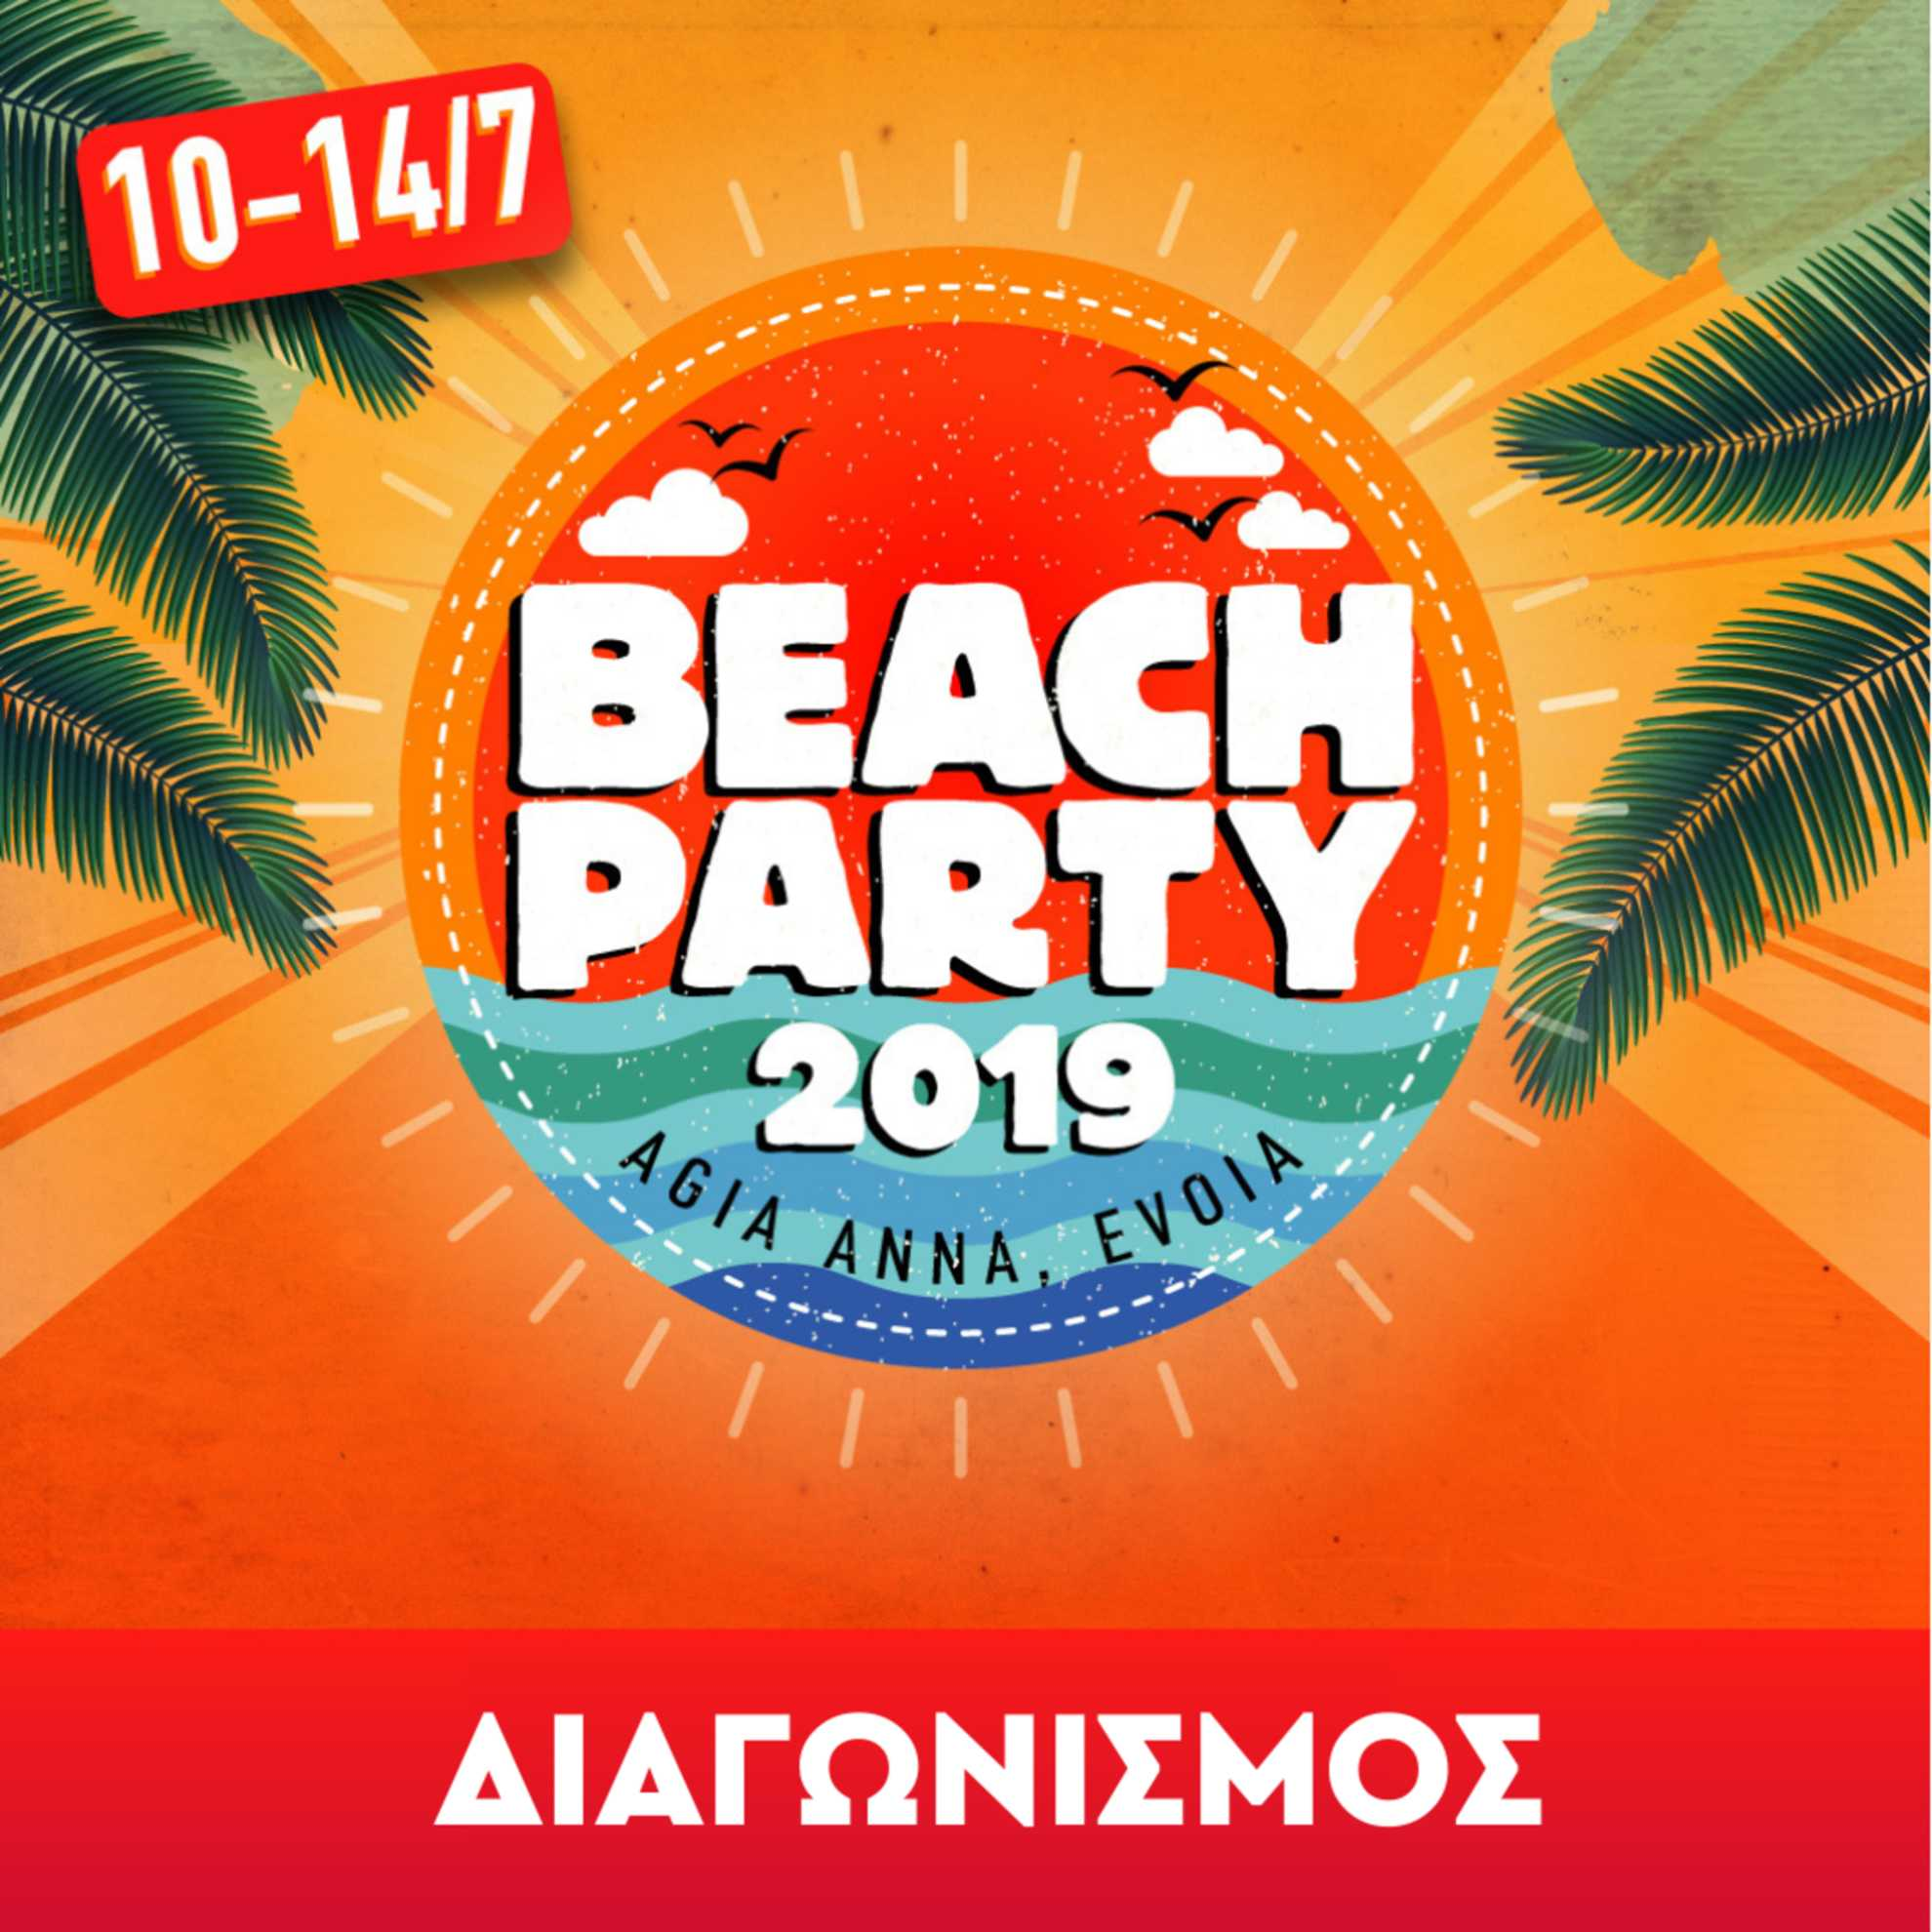 Beach Party Festival 2019: Κερδίστε διπλά μονοήμερα εισιτήρια!